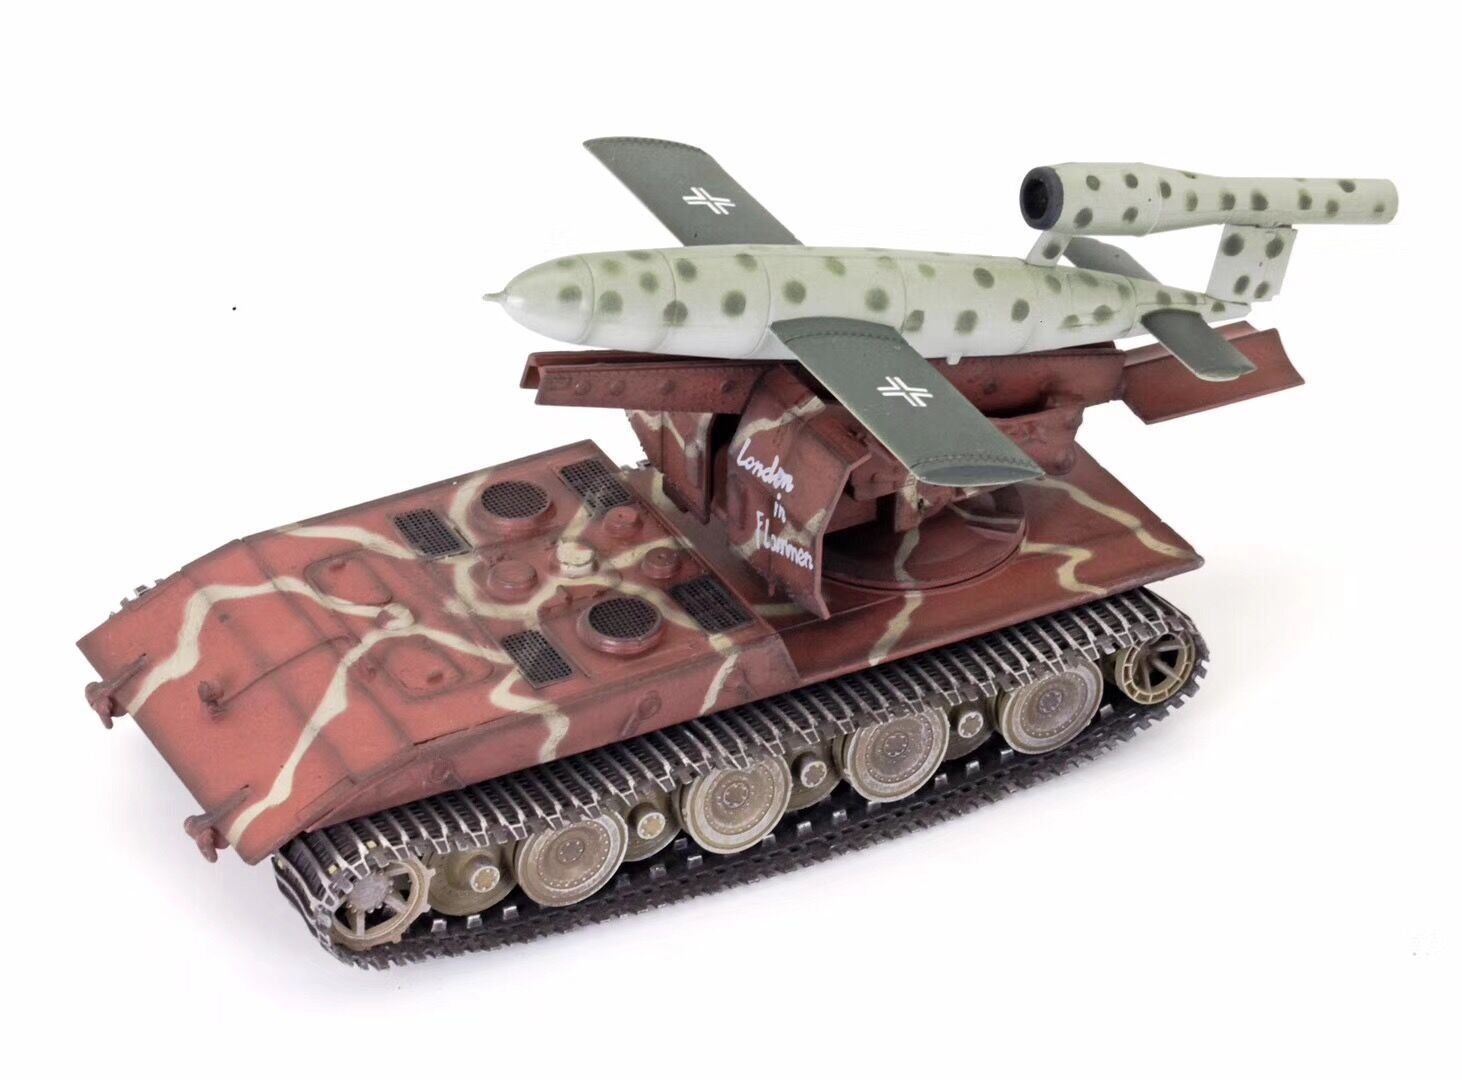 German WWII Waffentrager AUF E100 with V1 missile, 1946, Camouflage, ModelCollect Item Number AS72100